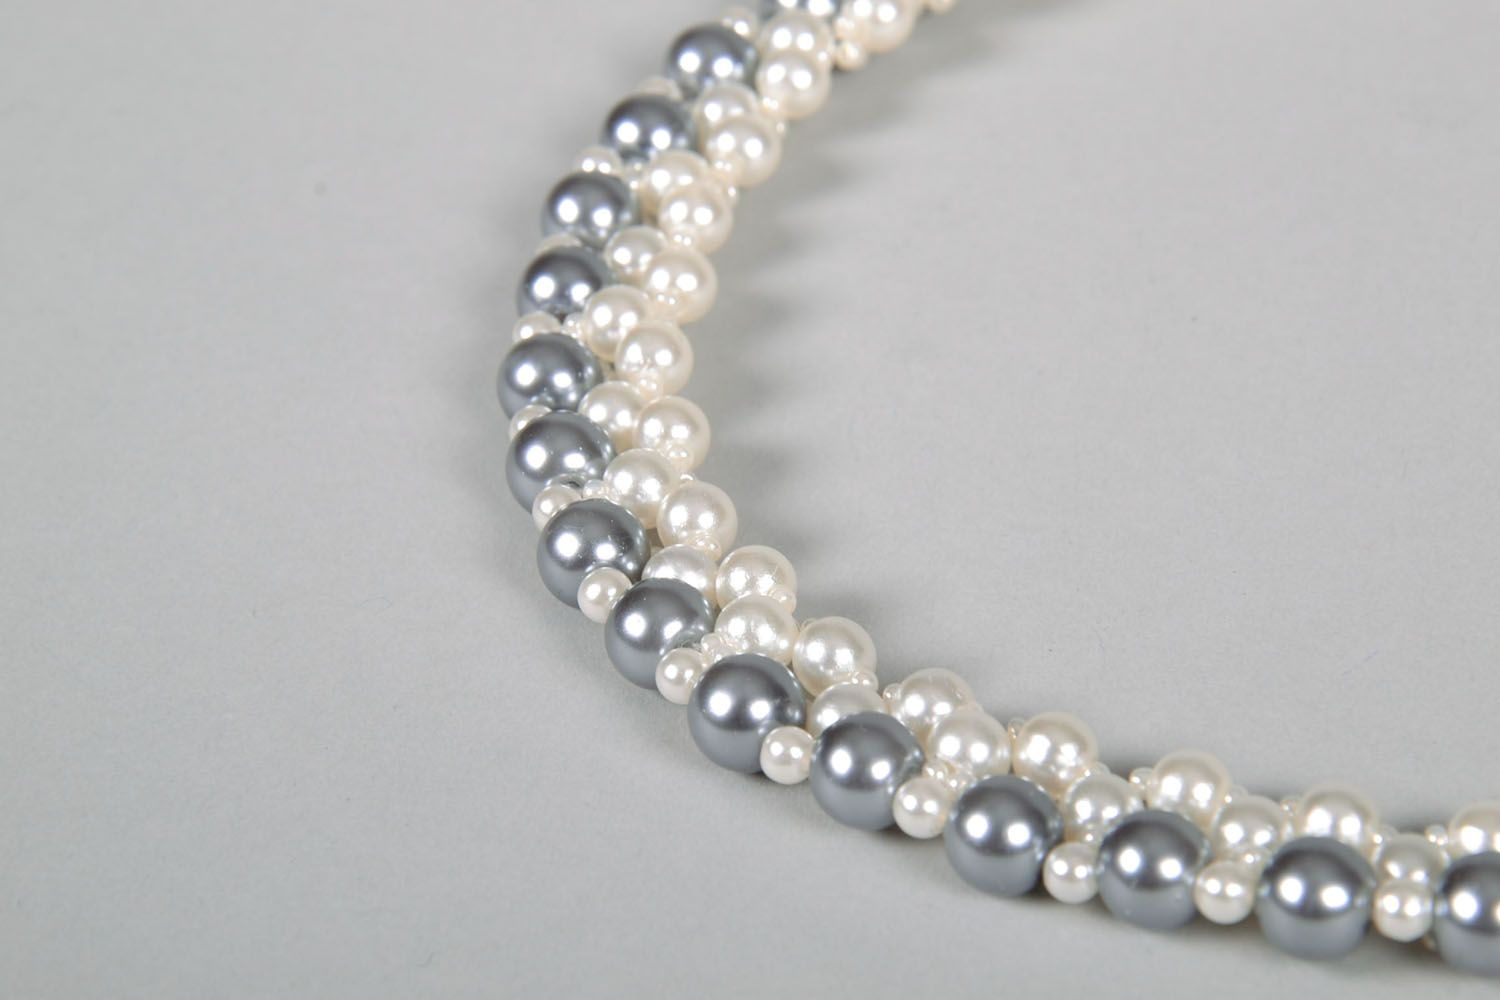 Necklace with artificial pearls photo 4